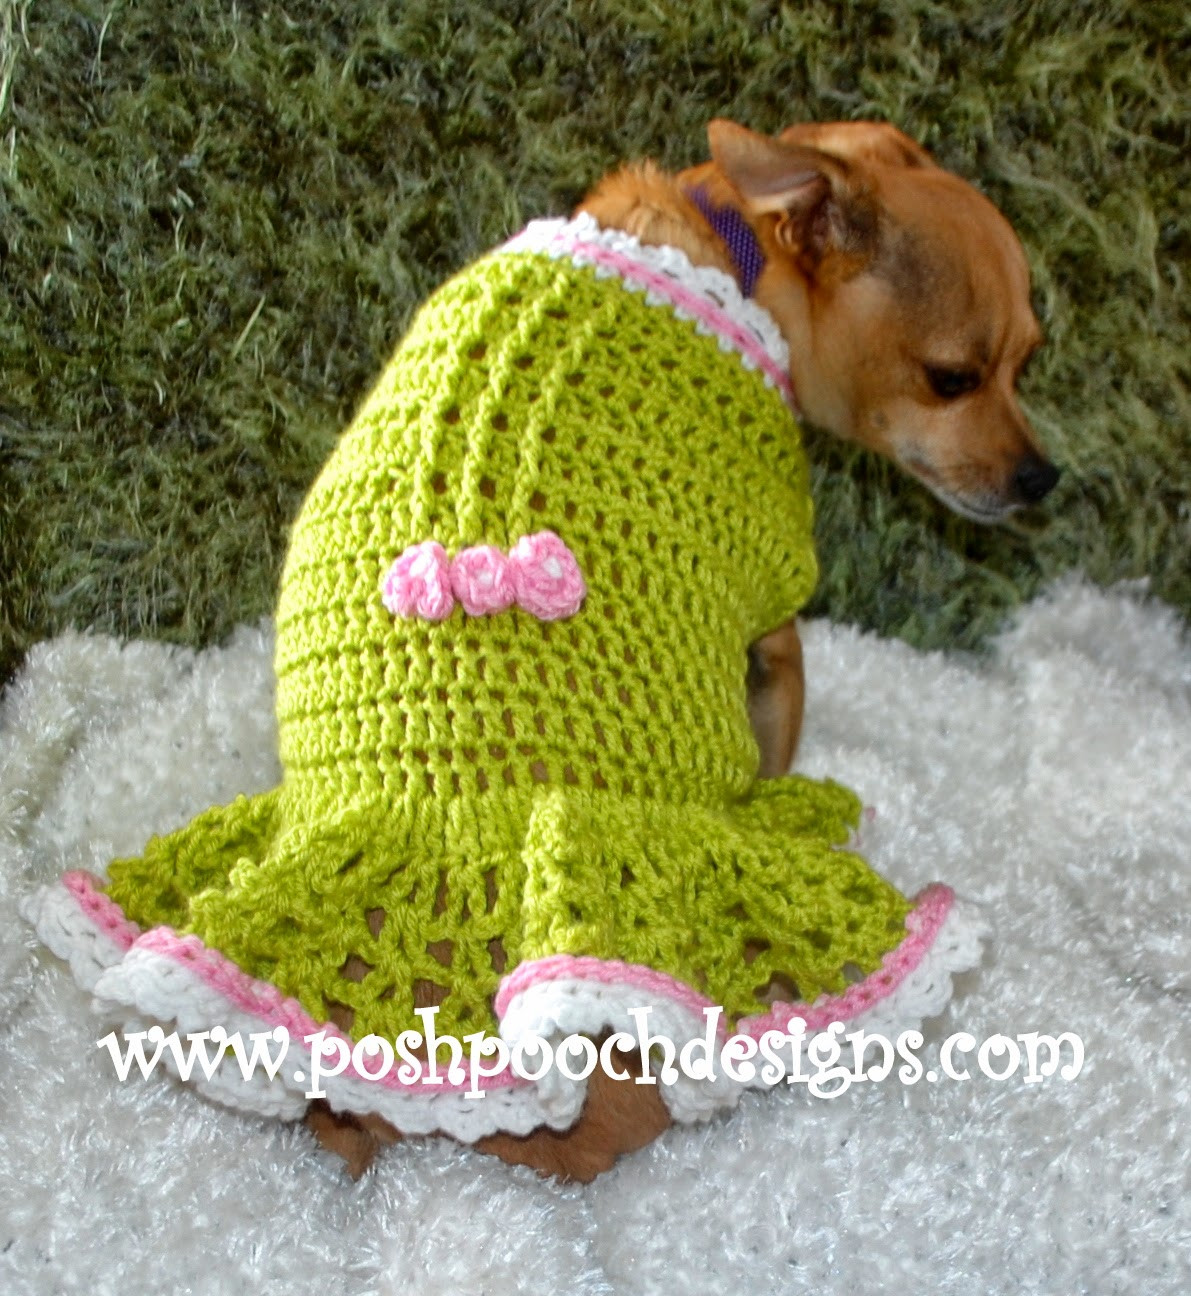 Crochet Small Dog Sweater Inspirational Posh Pooch Designs Dog Clothes New Release Amber Spring Of Amazing 48 Models Crochet Small Dog Sweater